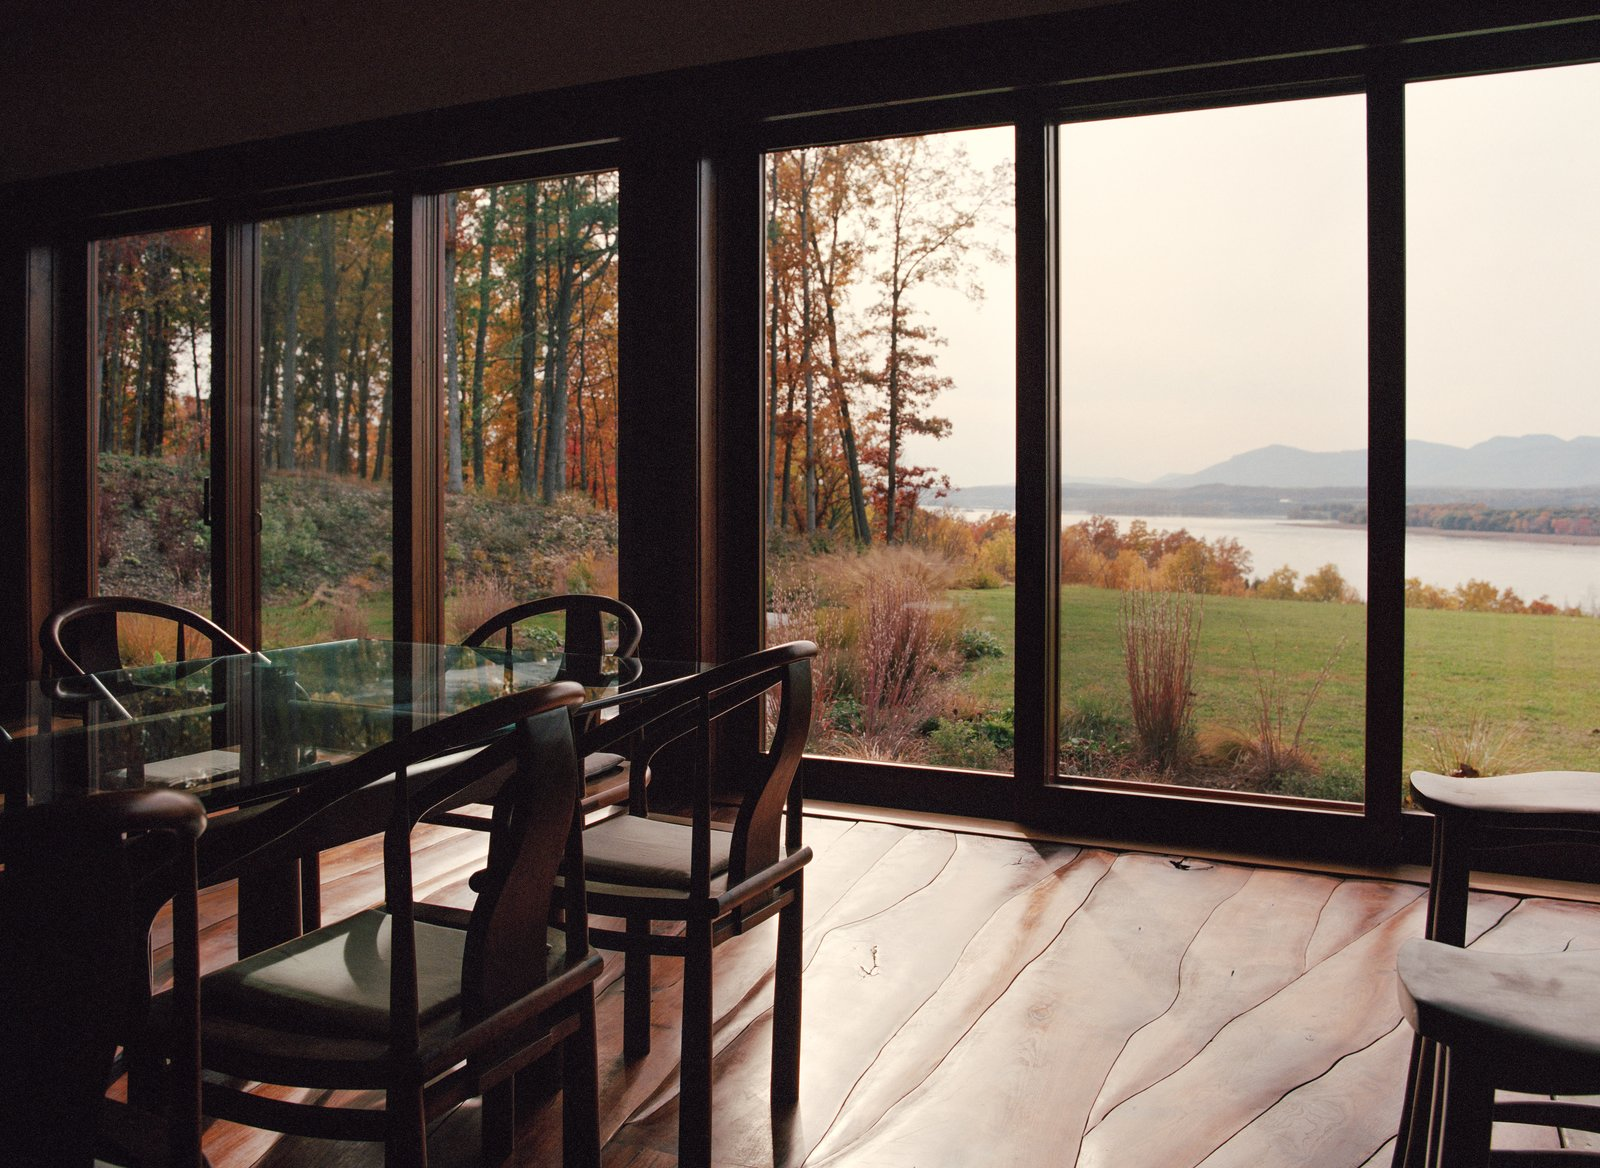 Overlooking the Hudson River, Allan Shope's nearly 3,000-square-foot sustainable home features handmade furniture and an undulating floor, all crafted from the site's felled black walnut trees. A House Not Built for Human Beings - Photo 1 of 9